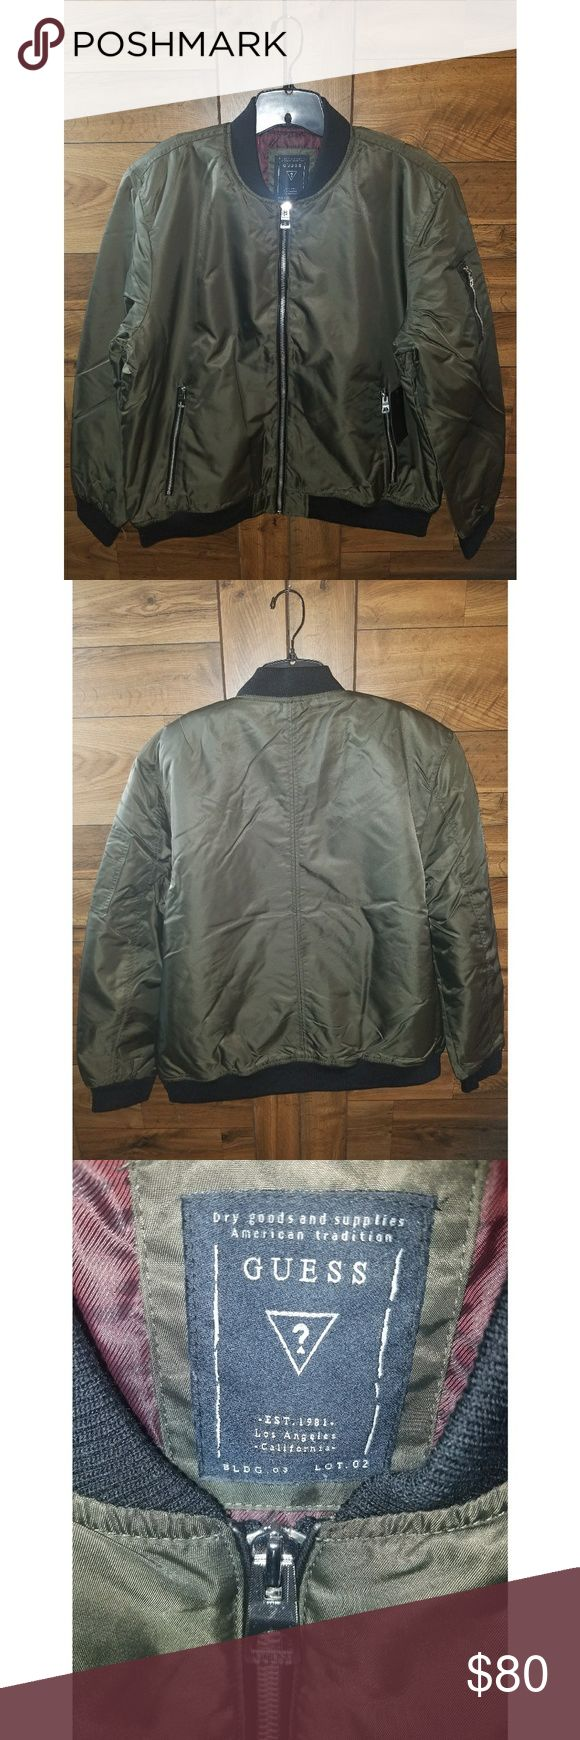 NEW Guess Men's Size XXL Harvey Bomber Jacket Nylon bomber jacket with quilted lining, faux-leather piping and high-shine hardware.  Shell: 100% Nylon. Lining and filling: 100% Polyester.Machine wash  Olive Green color. Currently sold out online.   I BUNDLE! Check out my other listings 😉 Guess Jackets & Coats Bomber & Varsity